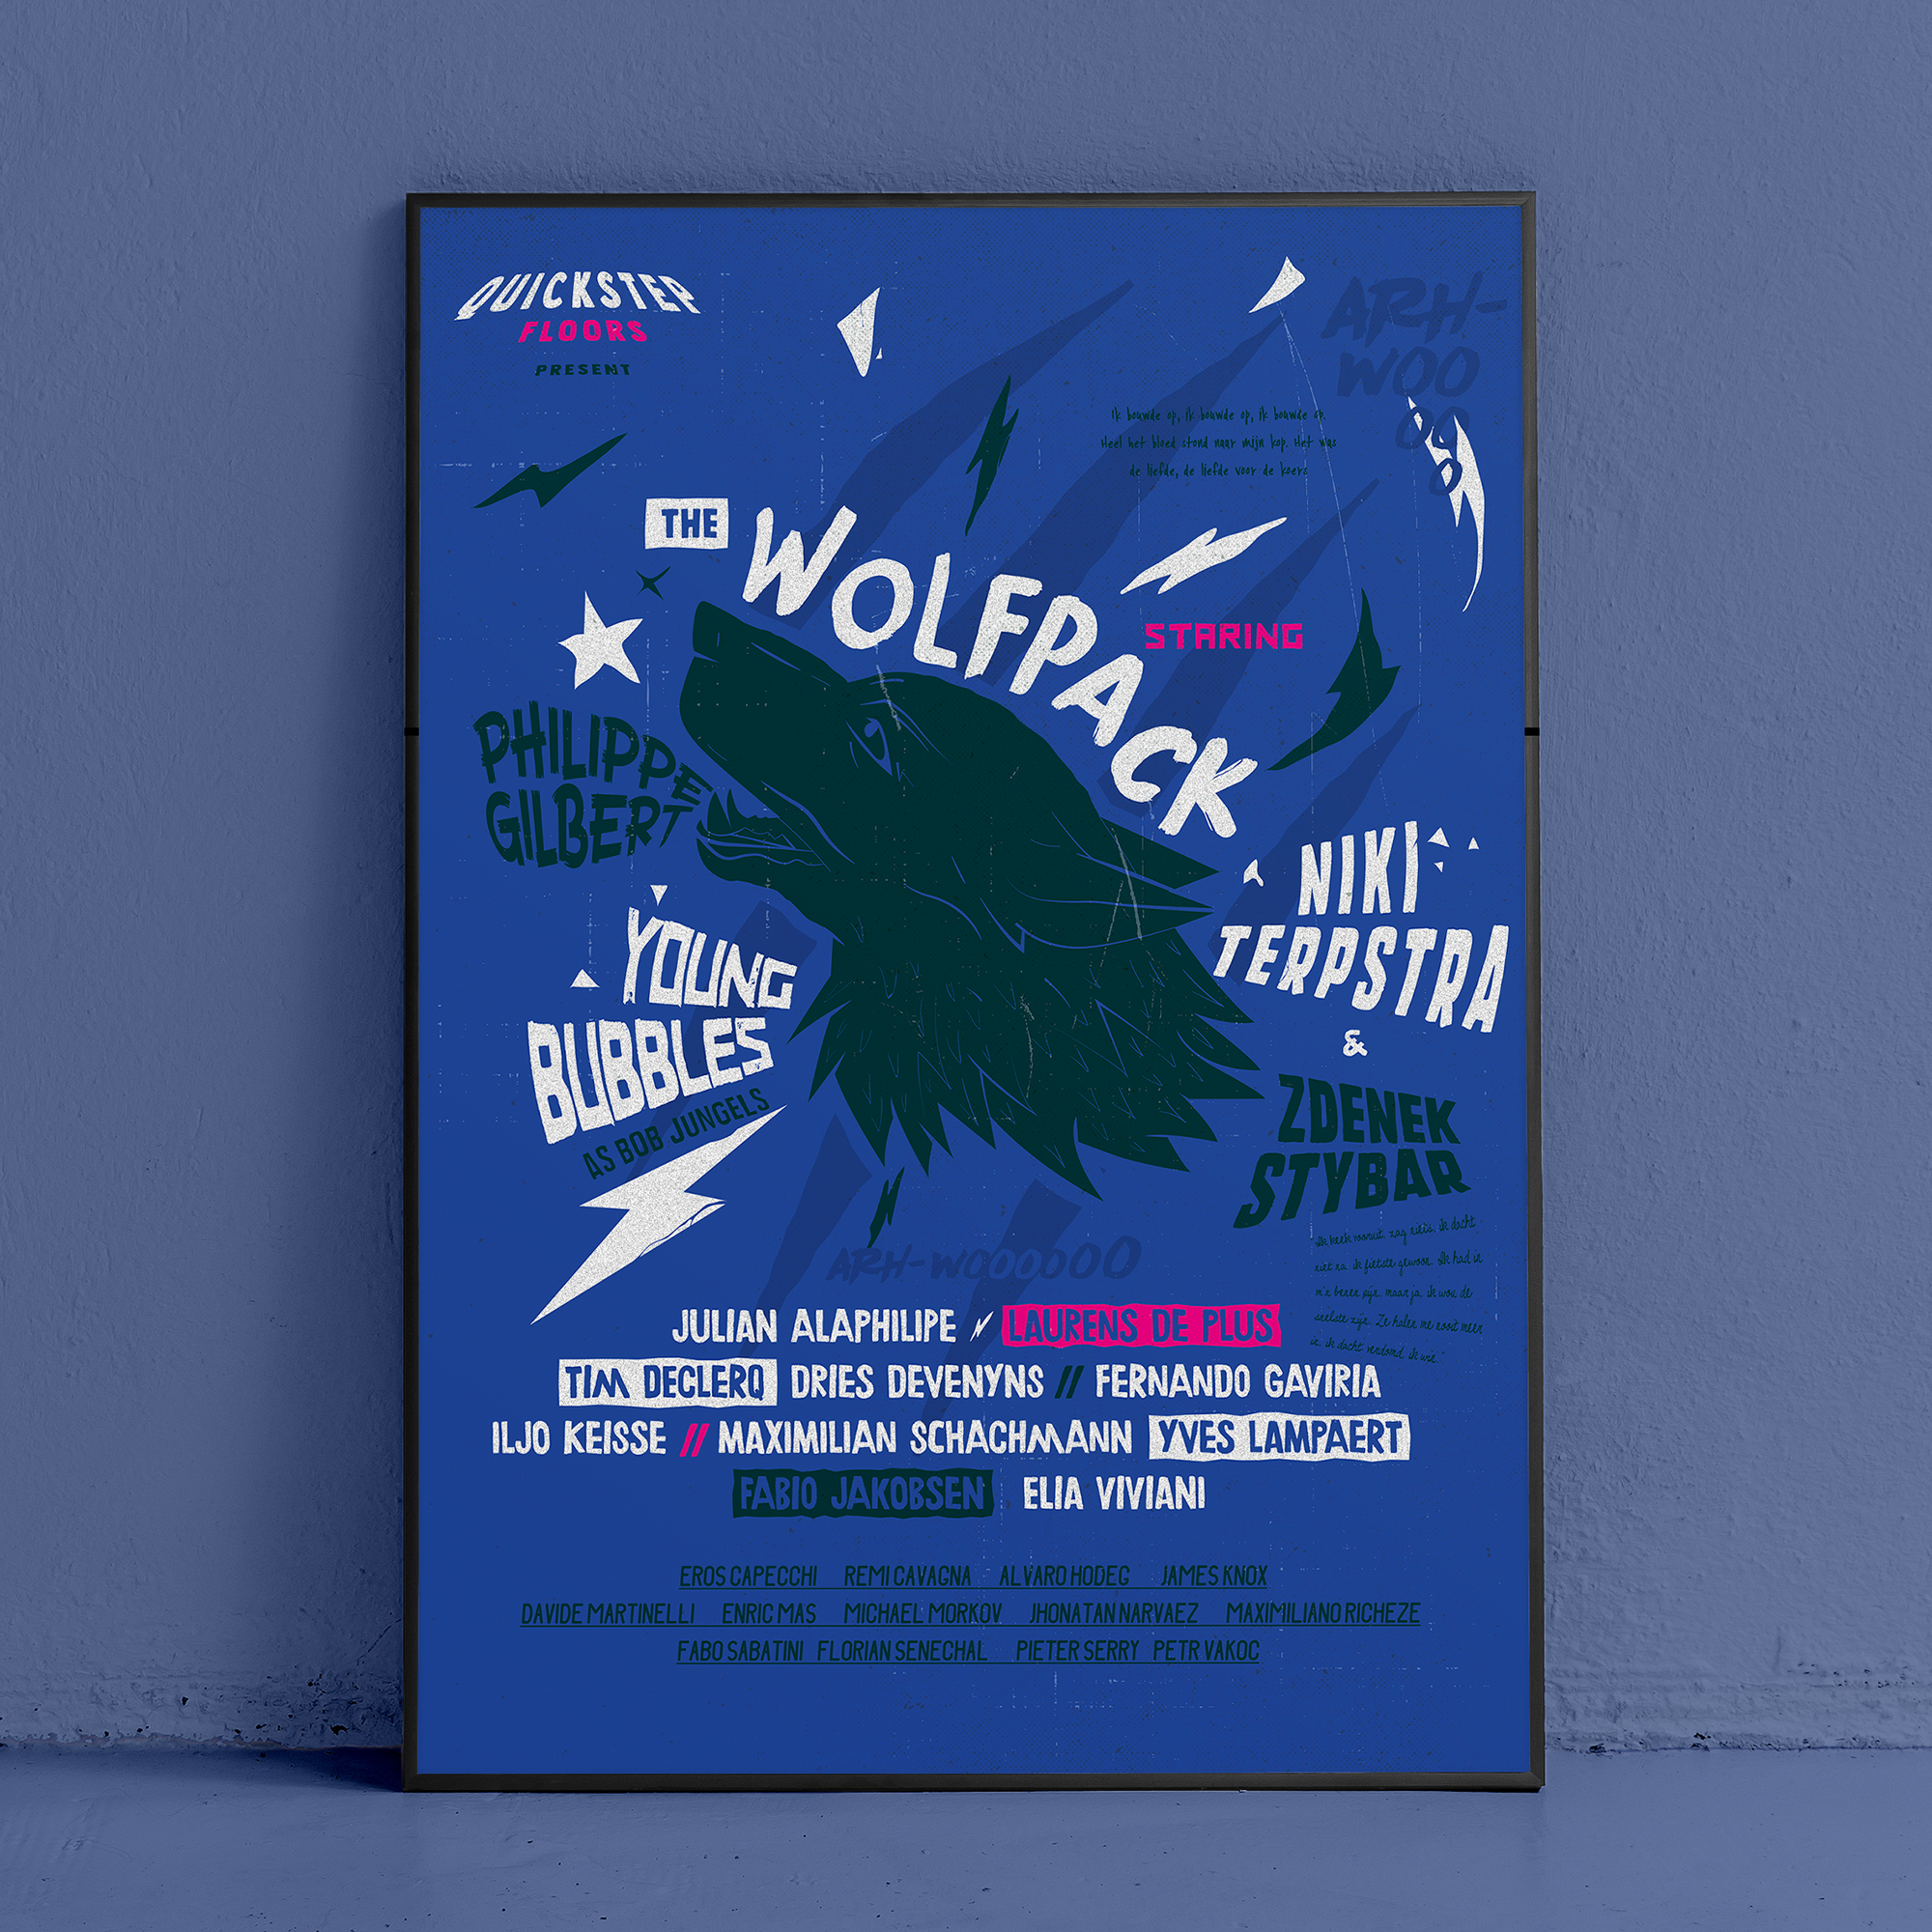 Wolfpack, Quickstep